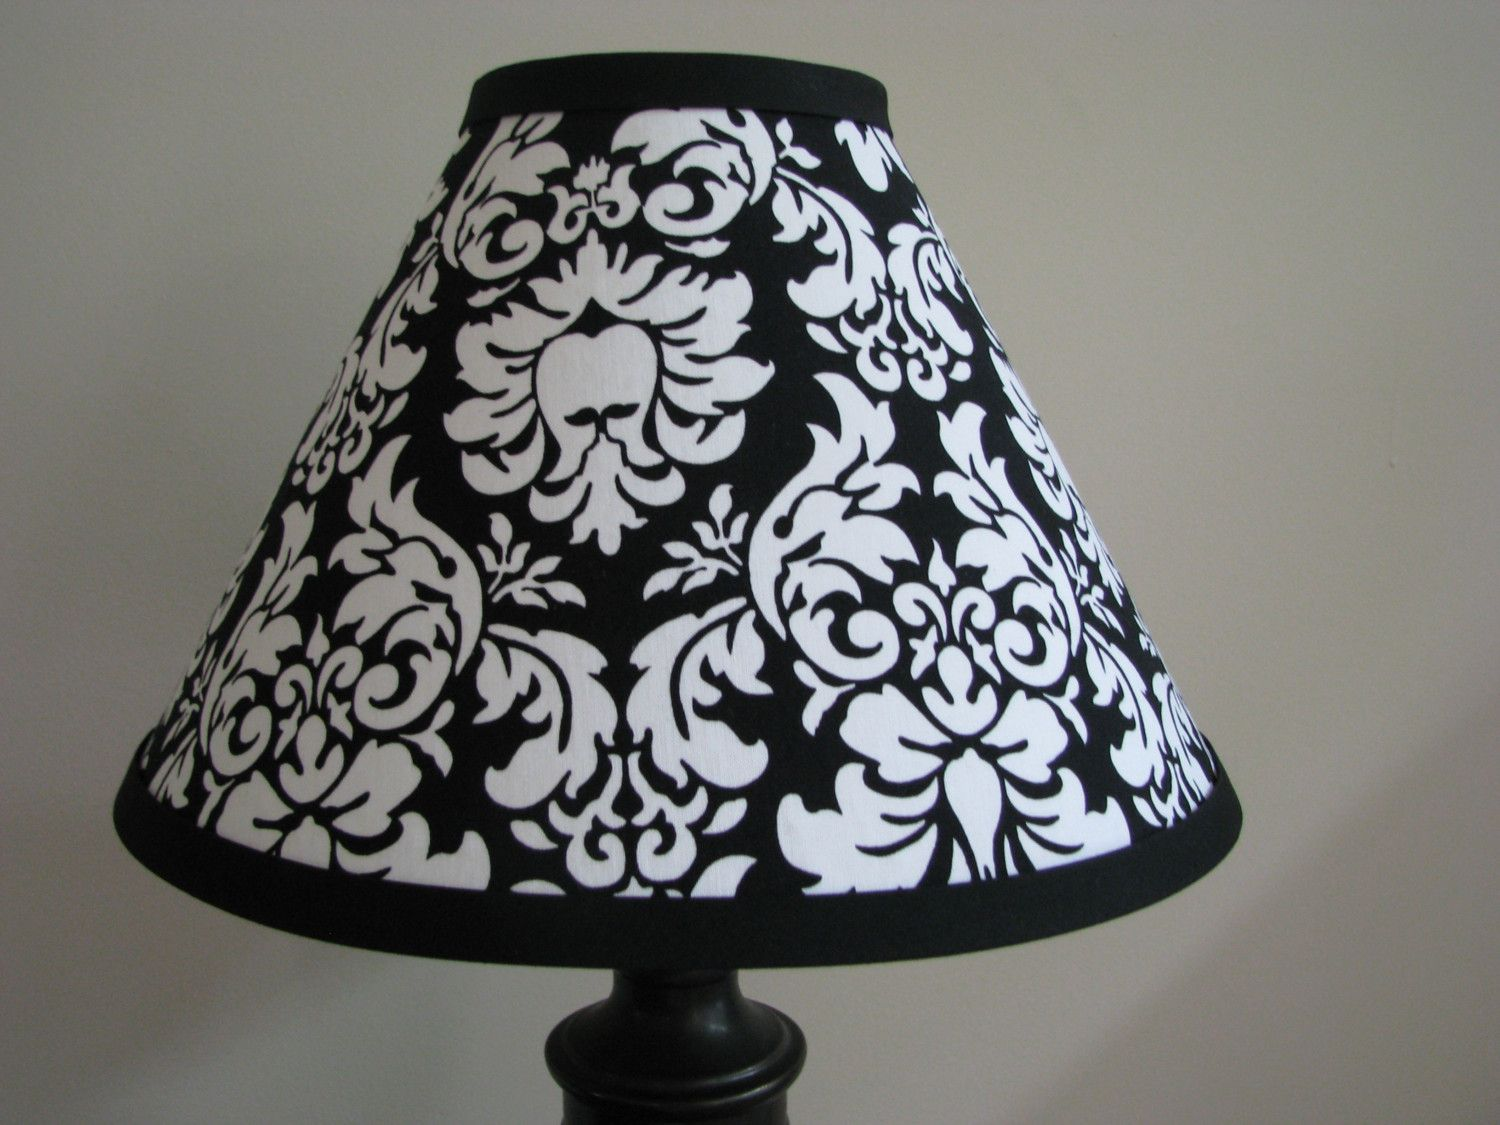 Image detail for black and white damask lamp shade bedroom lamp image detail for black and white damask lamp shade bedroom lamp nursery light aloadofball Choice Image